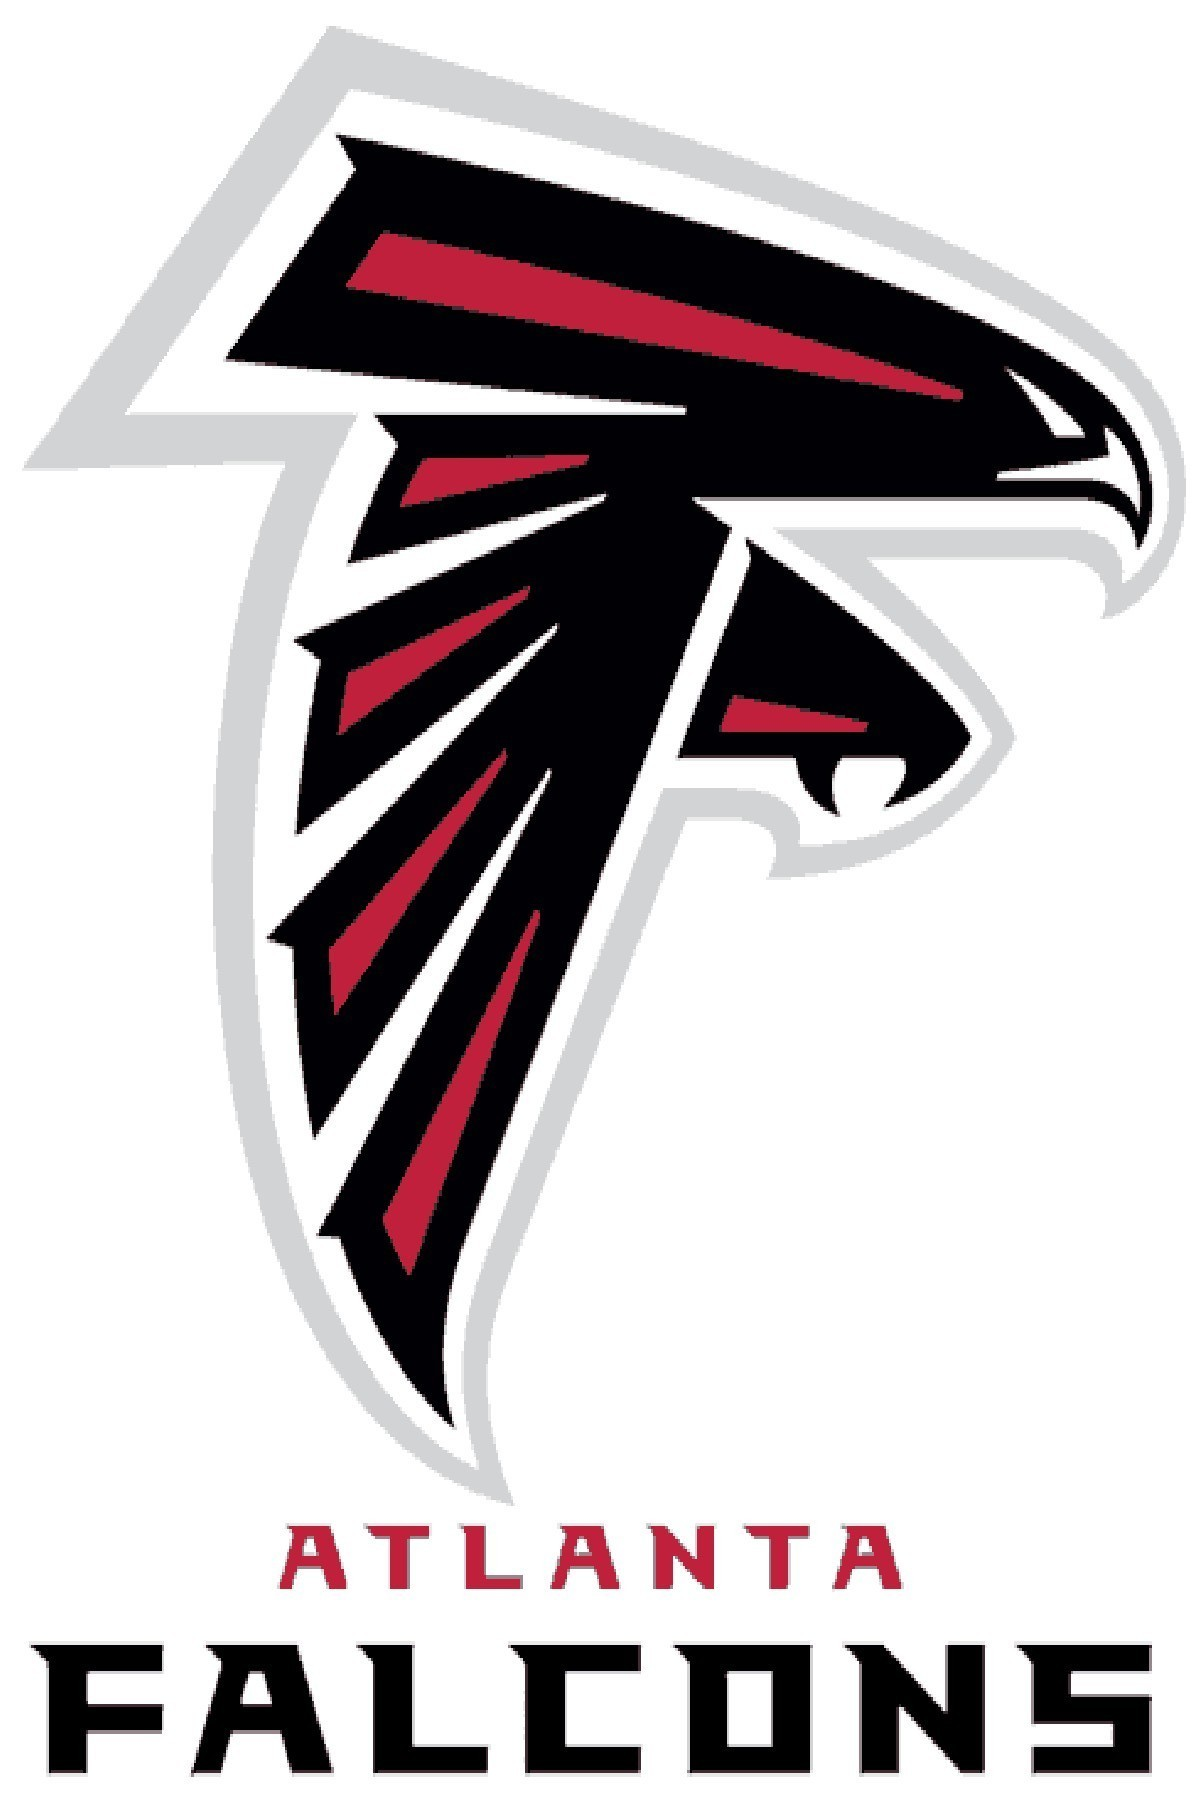 Atlanta Falcons Images Logo HD Wallpaper And Background